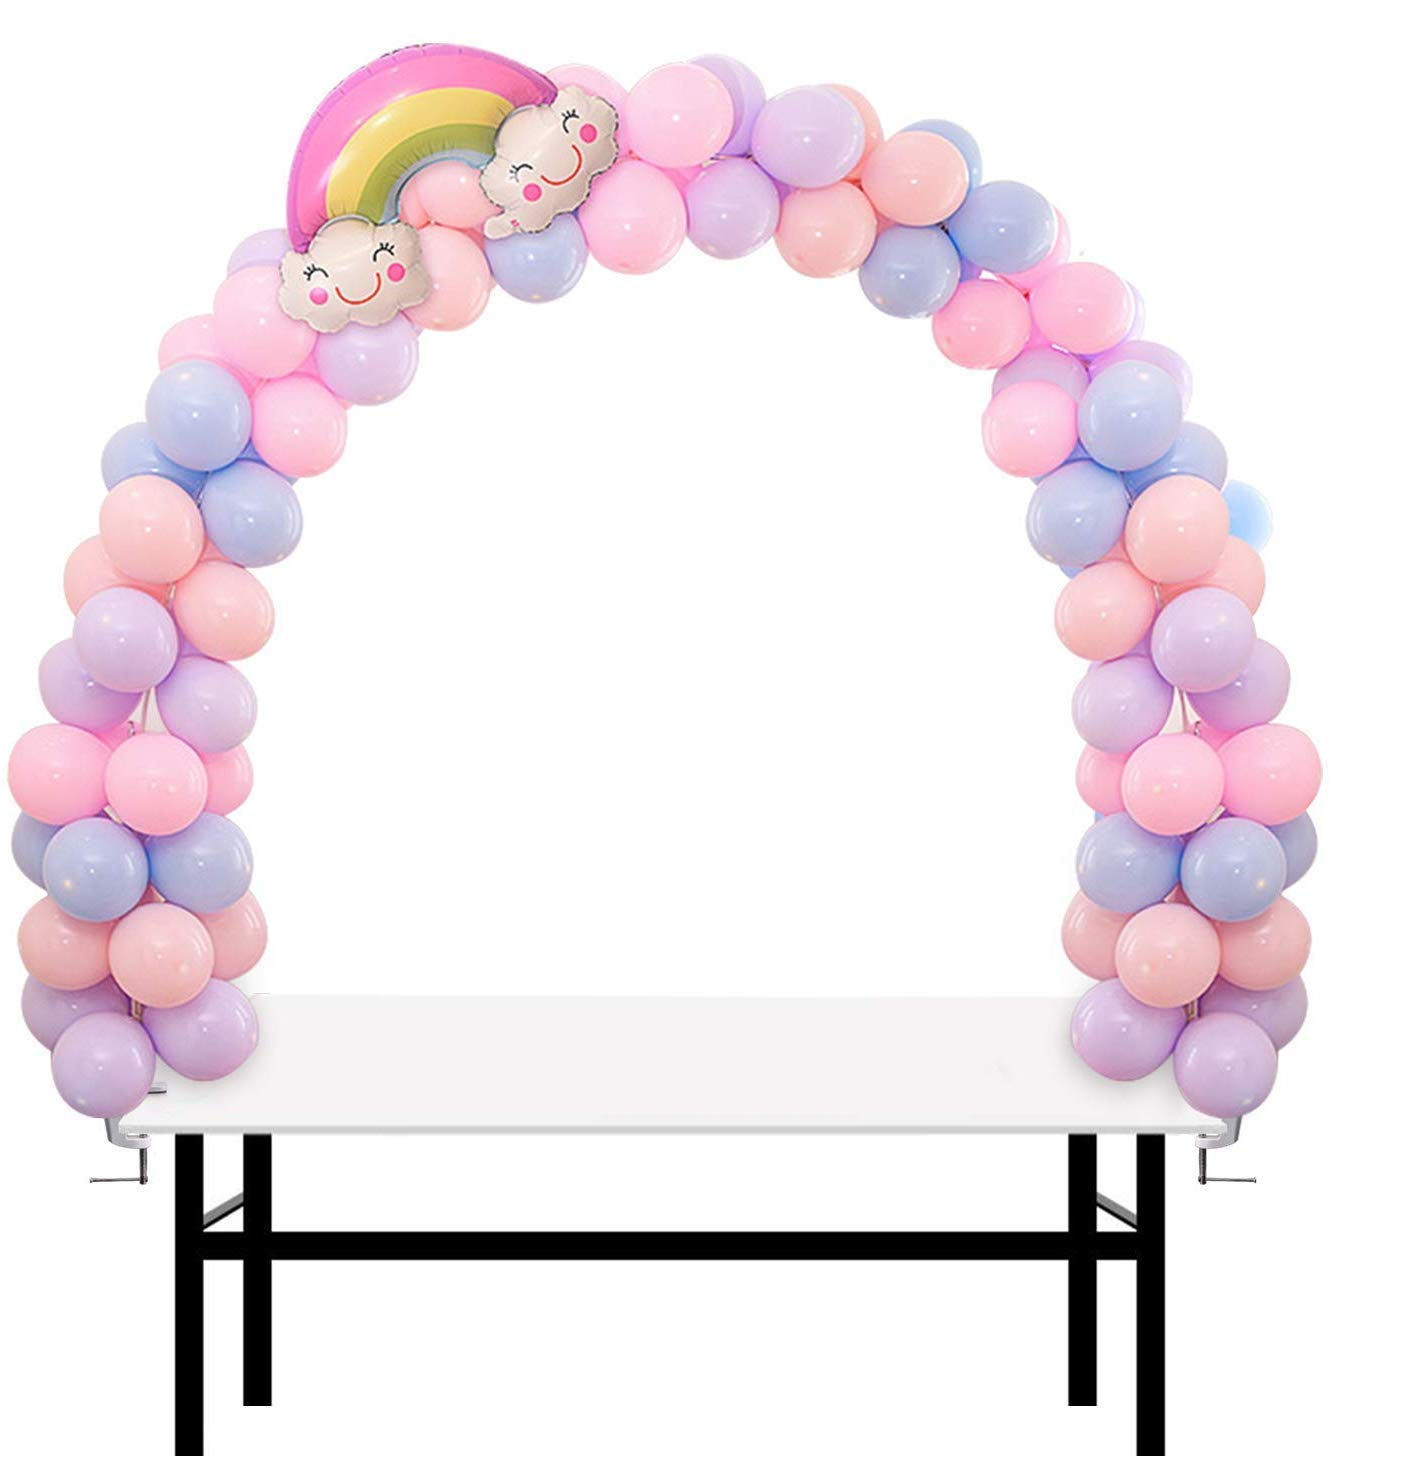 IDAODAN Table Balloon Arch Kit Adjustable [2020 Upgraded] for Baby Shower, Birthday, Wedding, Festival, Graduation Decorations and DIY Event Party Supplies